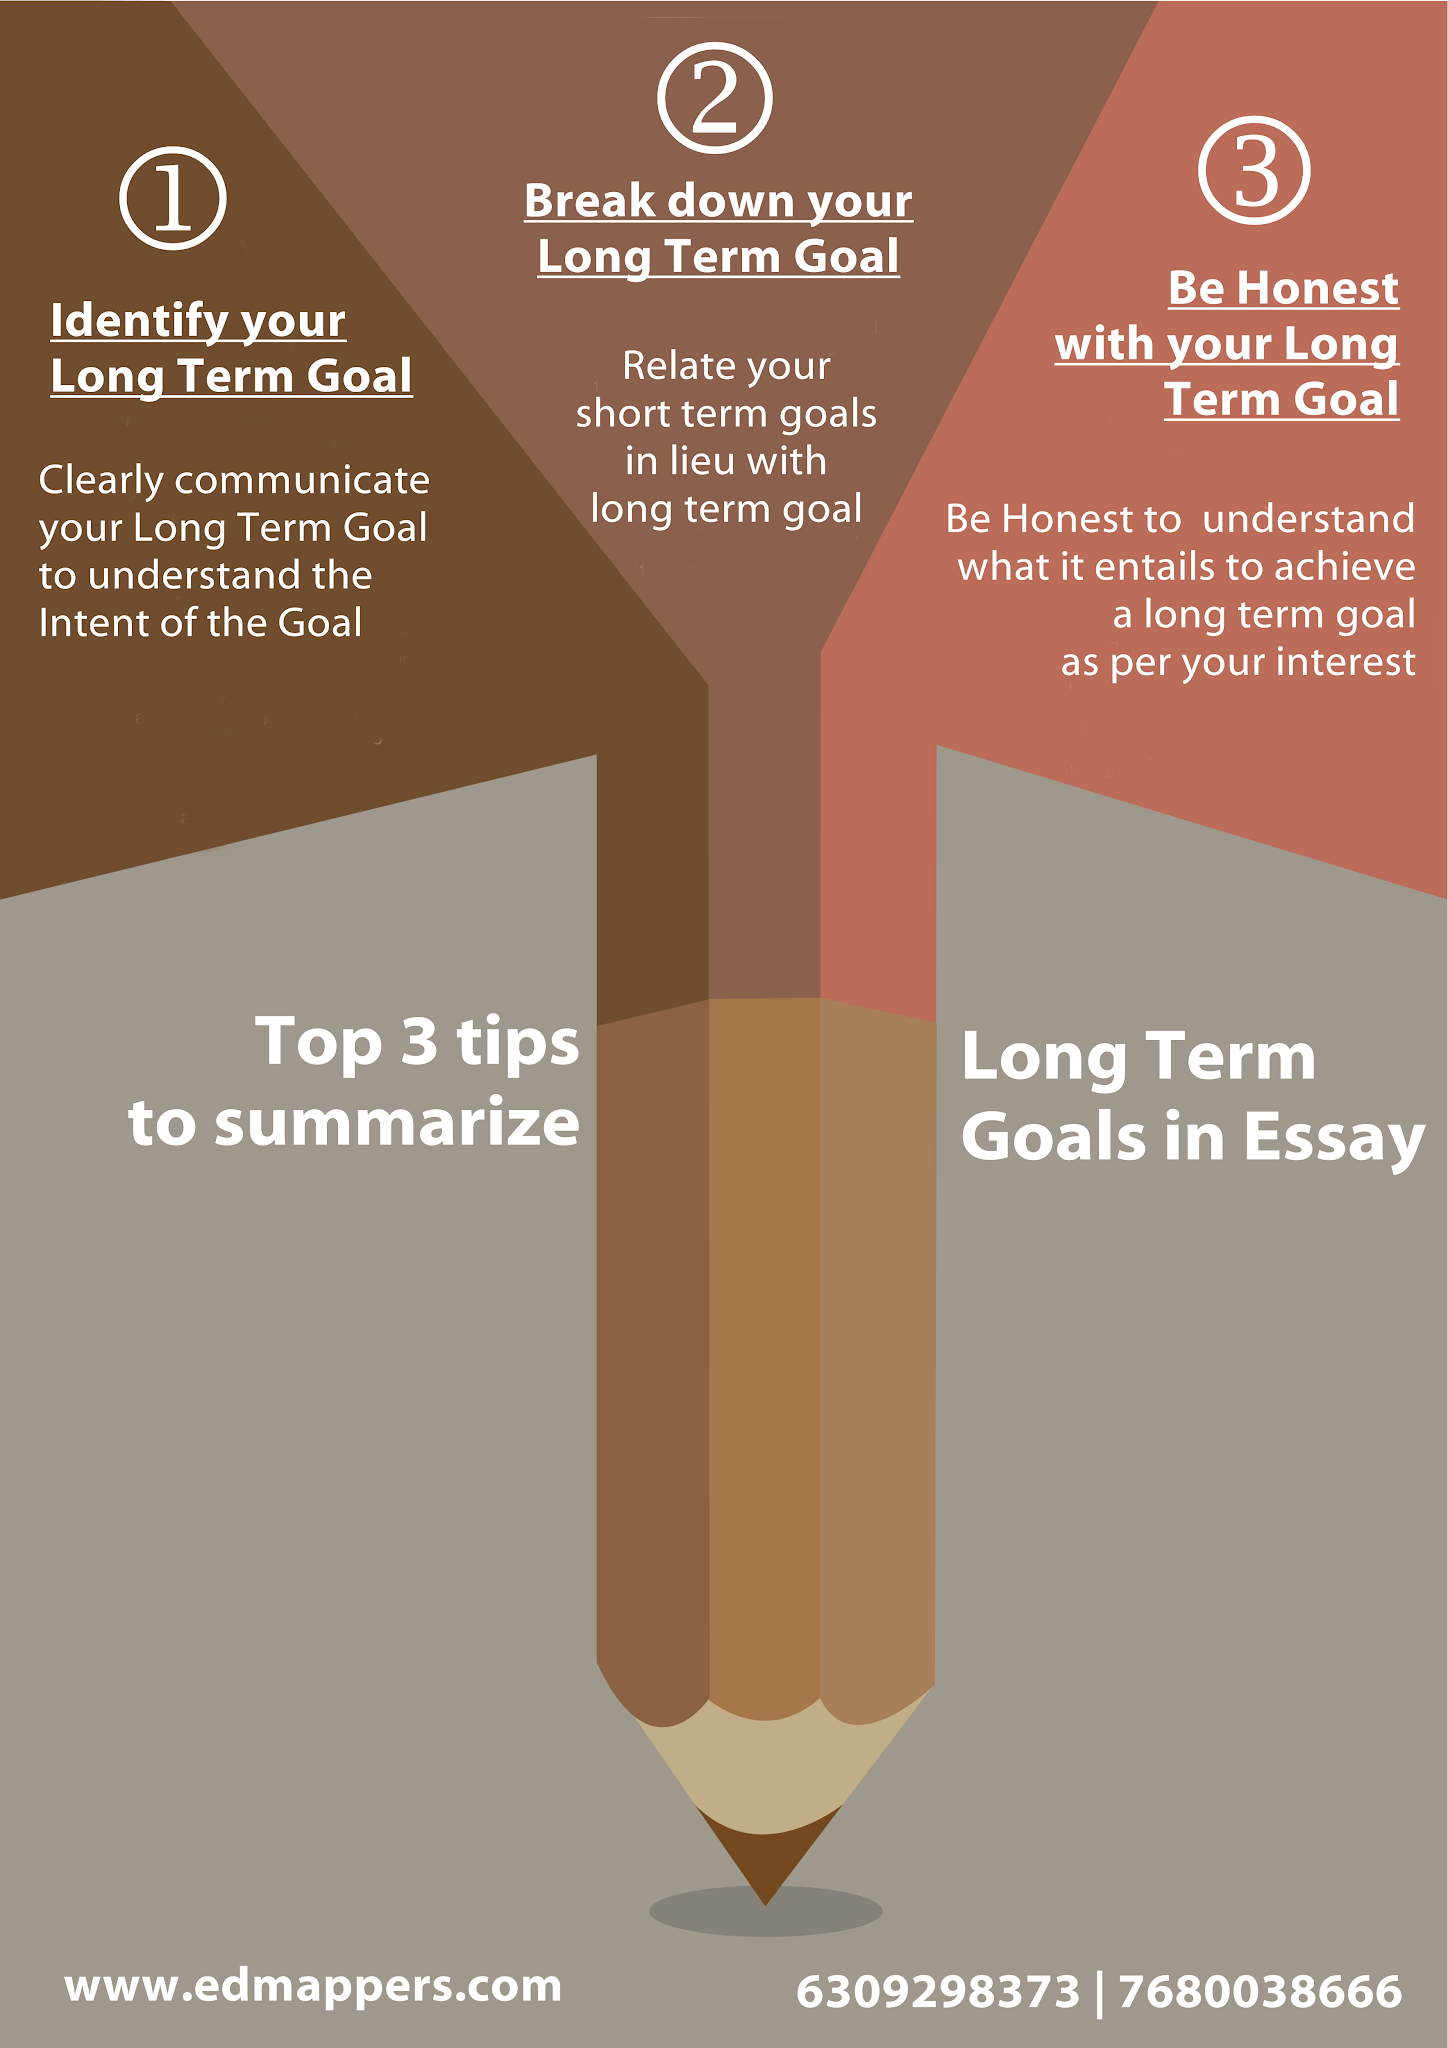 Top 3 Tip To Summarize Your Long Term Goal In Essay Edmapper Career Advisor Planning Short And